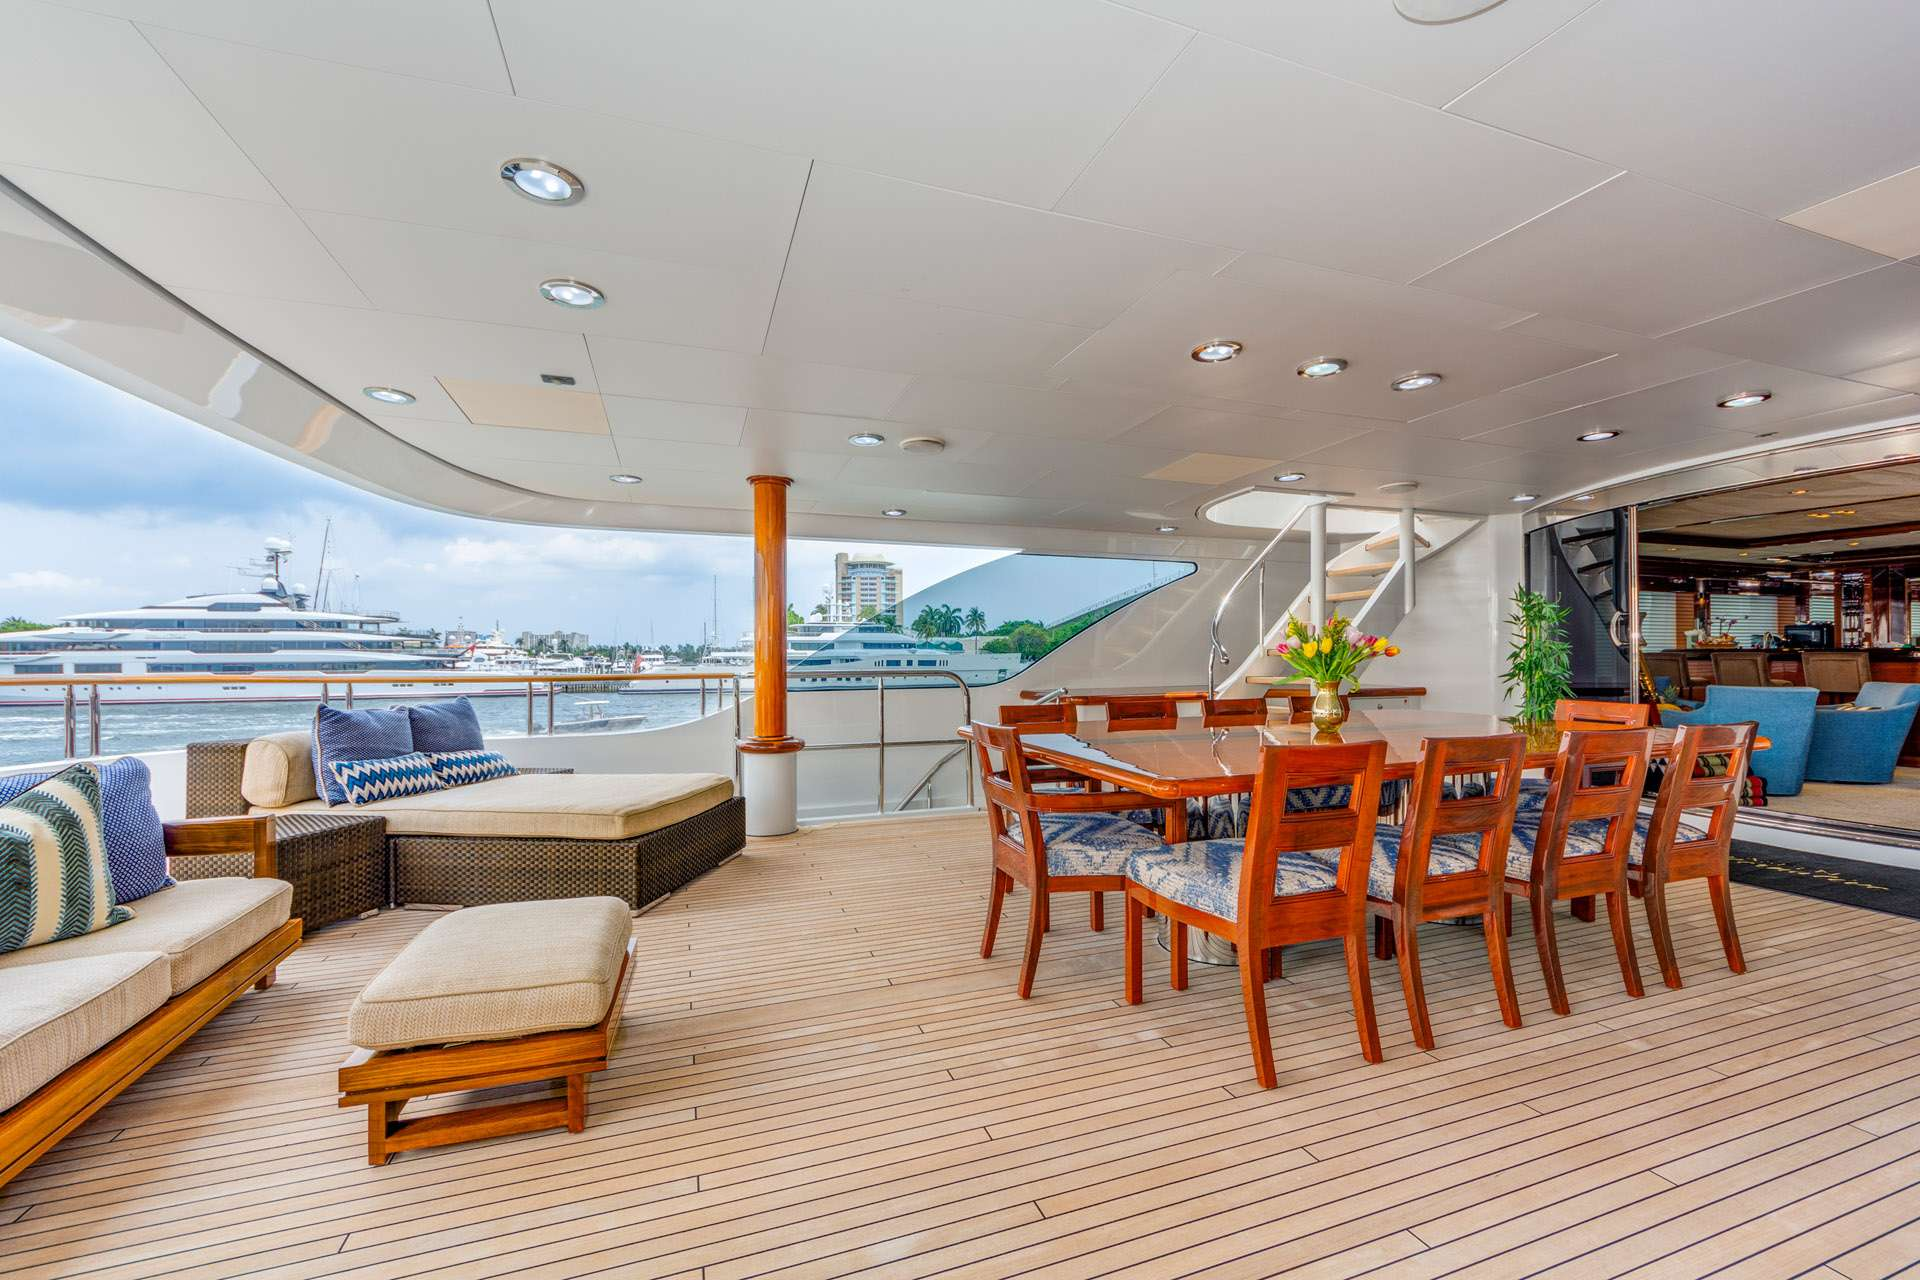 Bridge Deck, Alfresco Dining